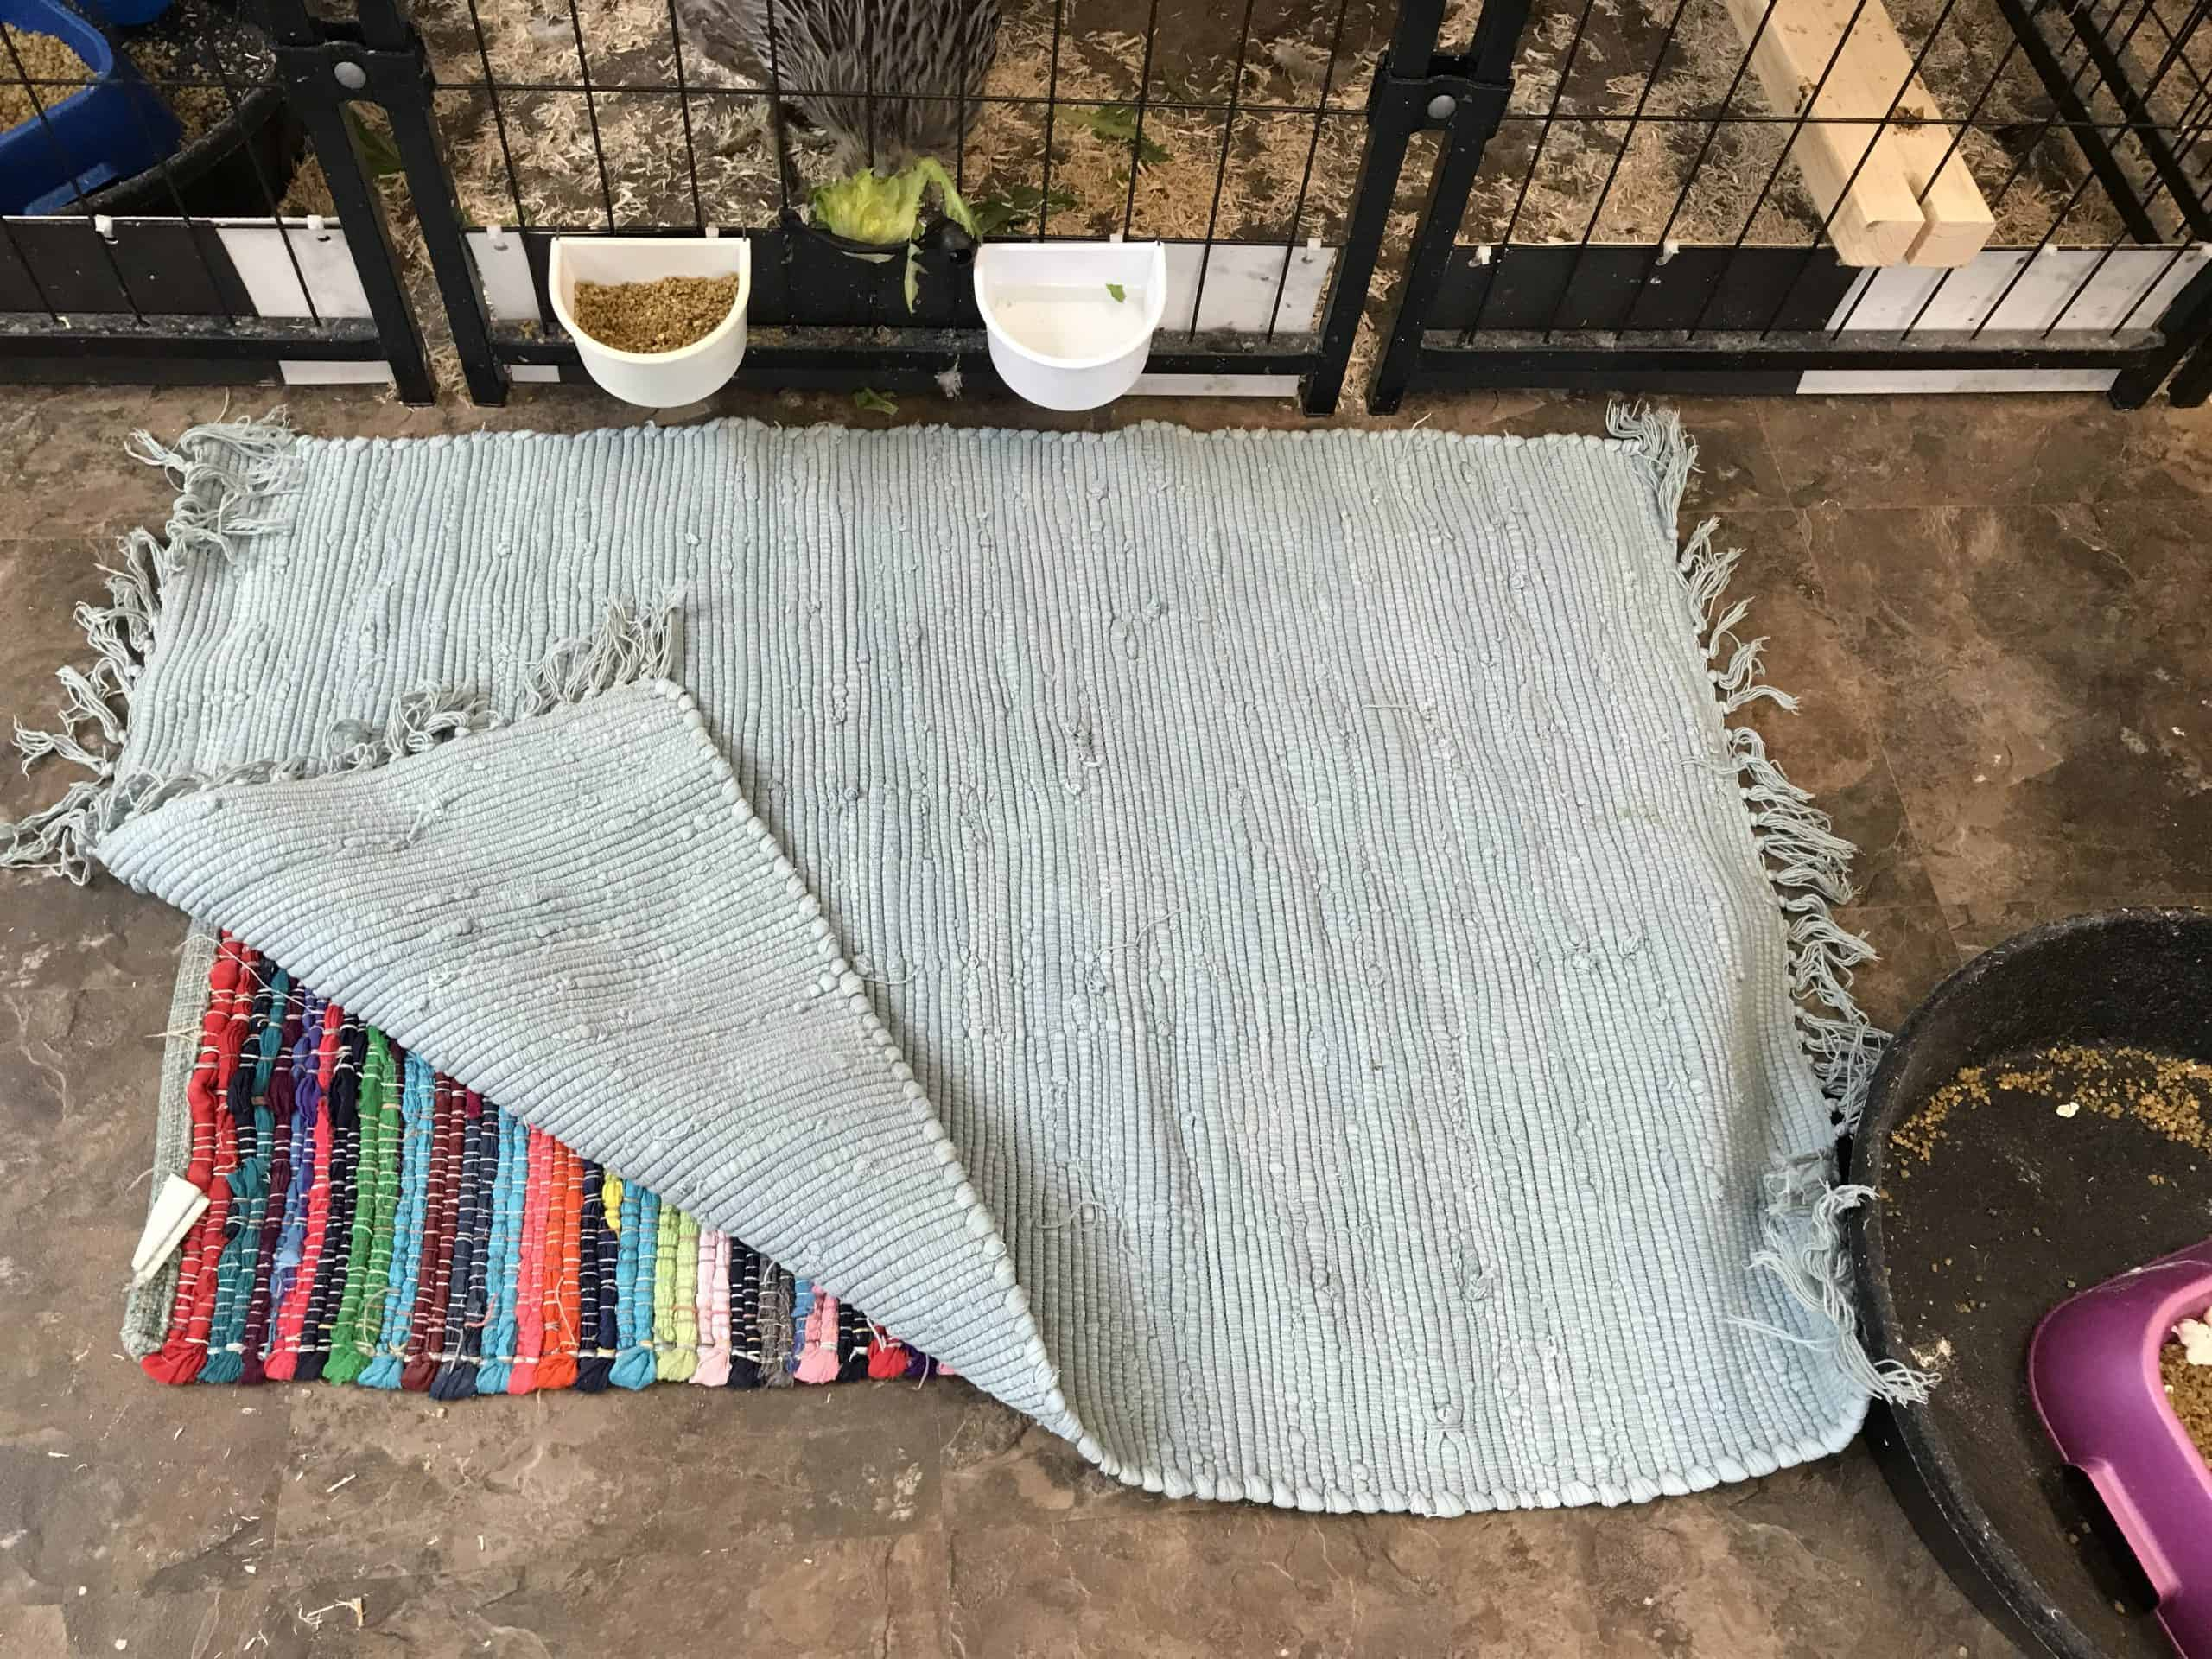 The corner of a rag rug is lifted up to reveal another rag rug underneath it. Two food and water hook-on dishes are secured to the outside of a modular pen.